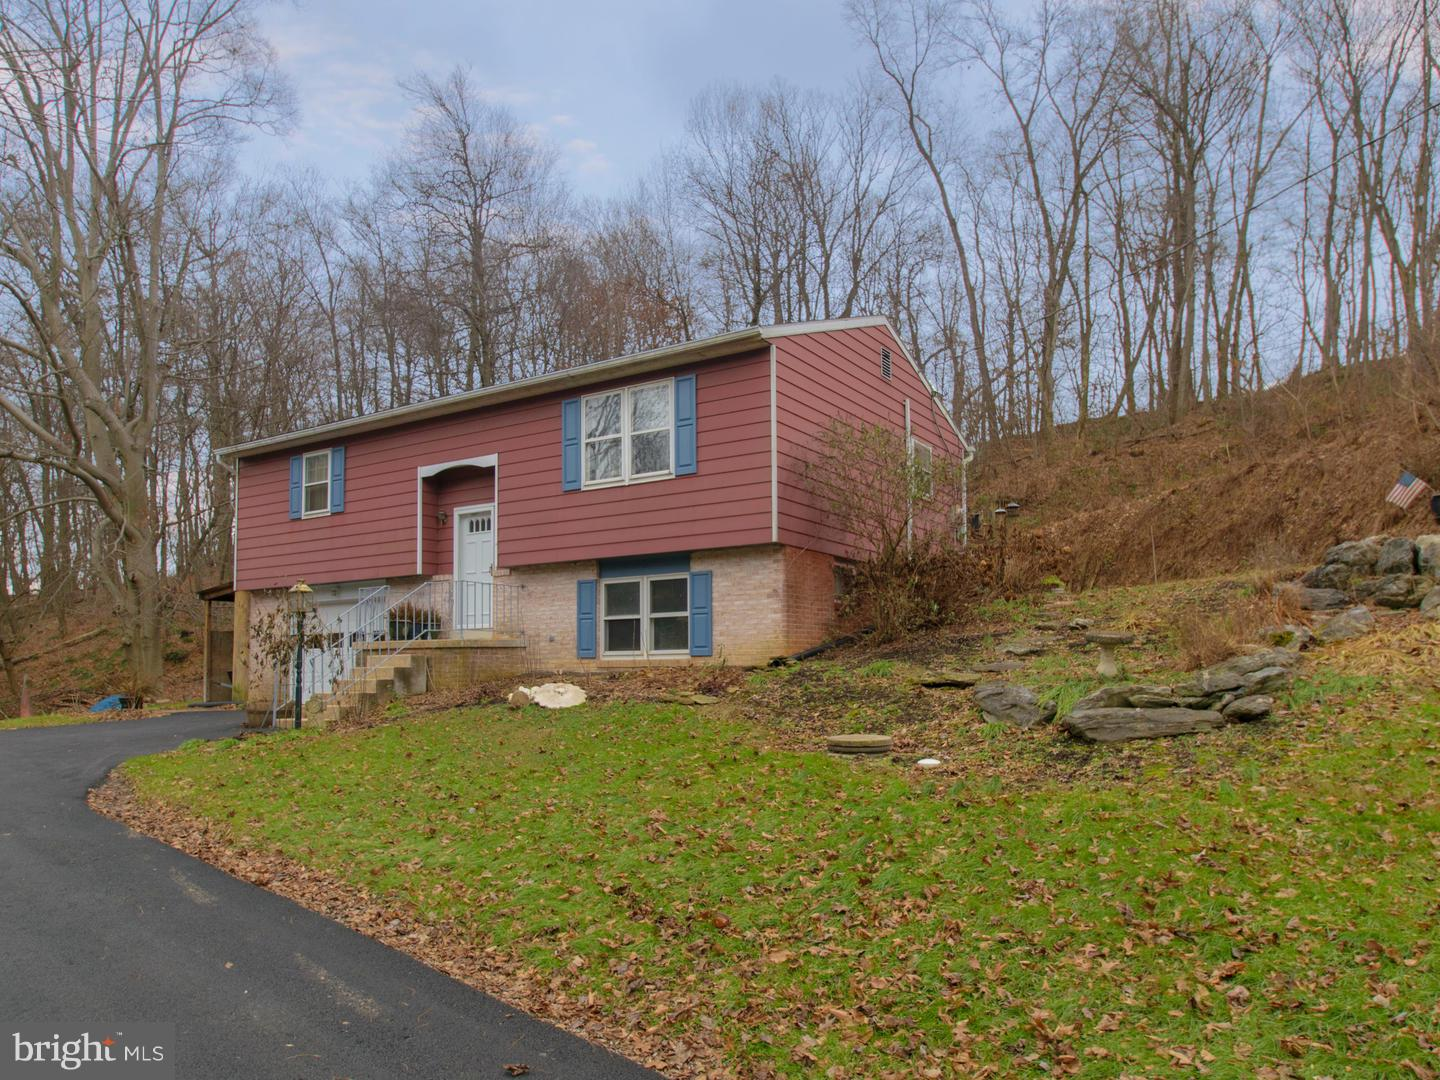 593 Buck Rd, Quarryville, PA, 17566